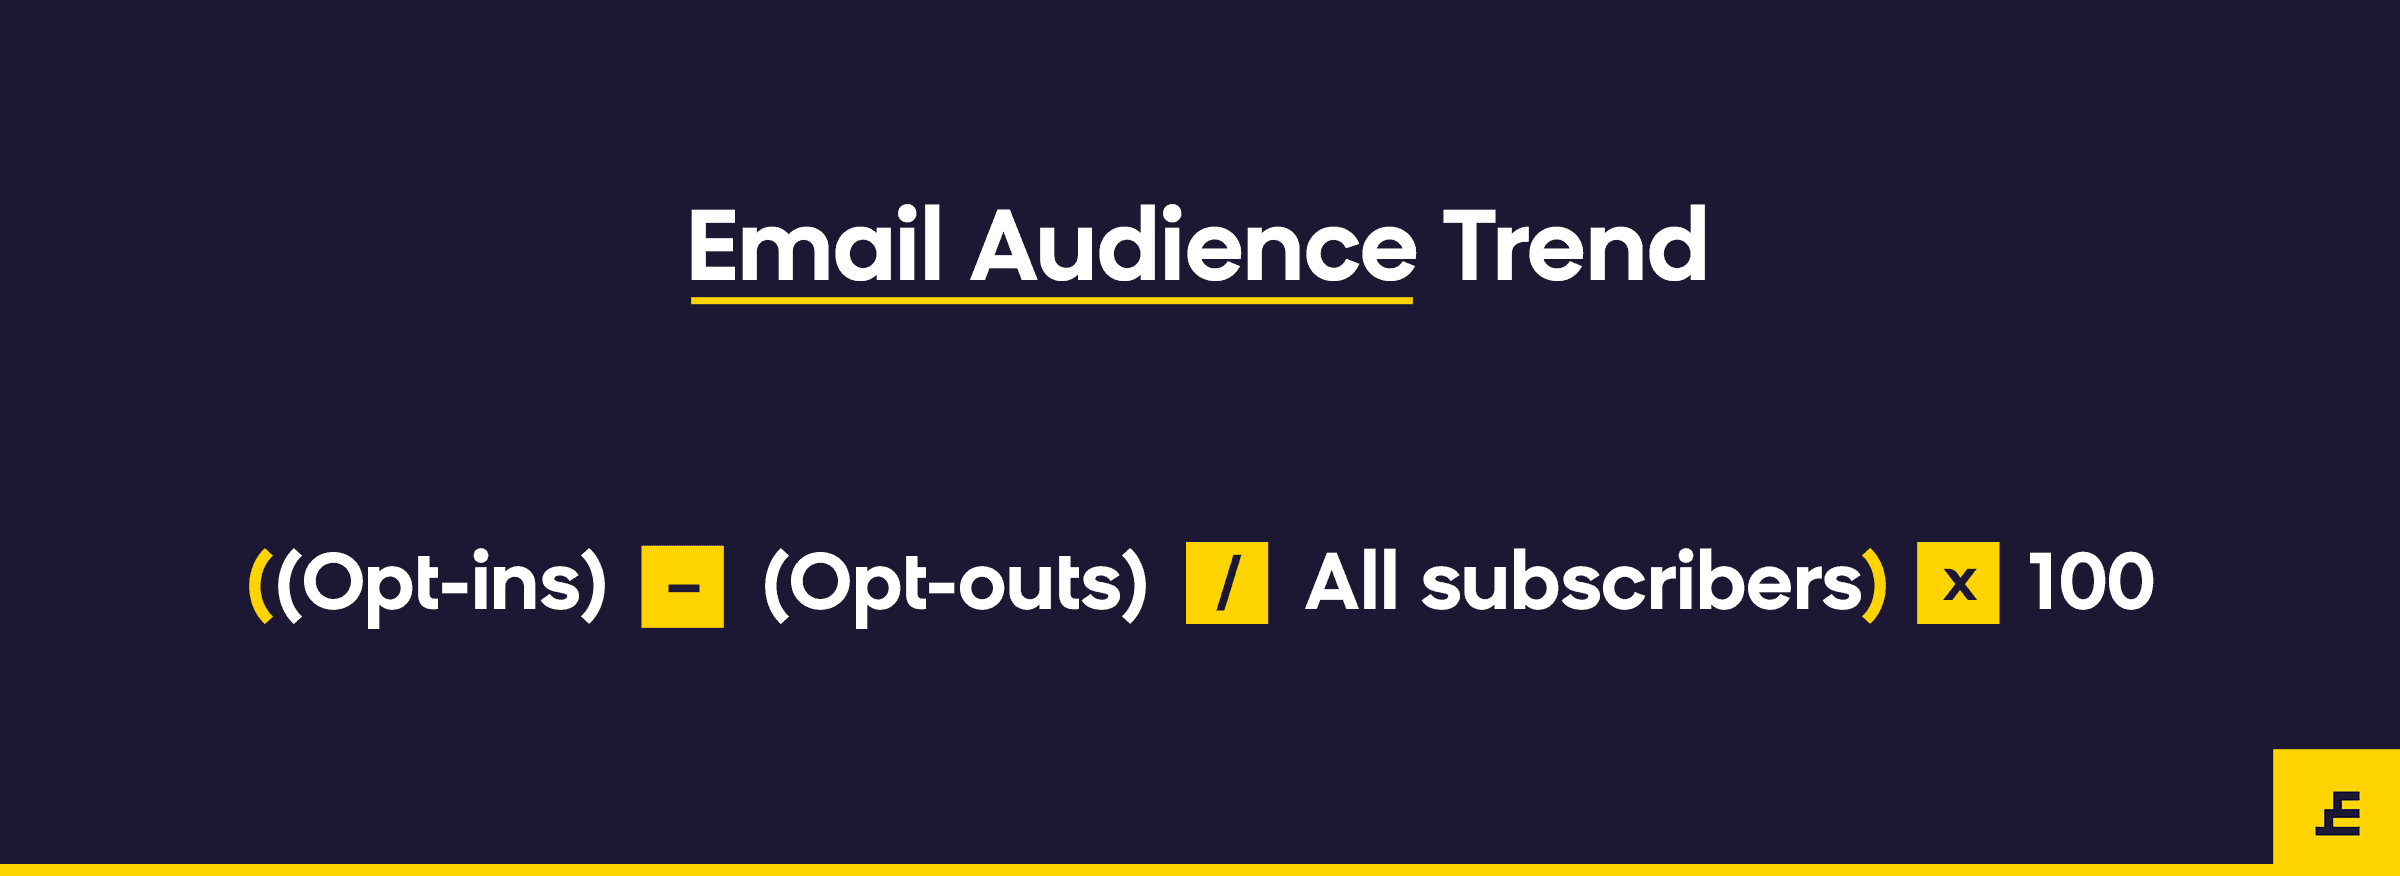 email marketing metric - audience trend